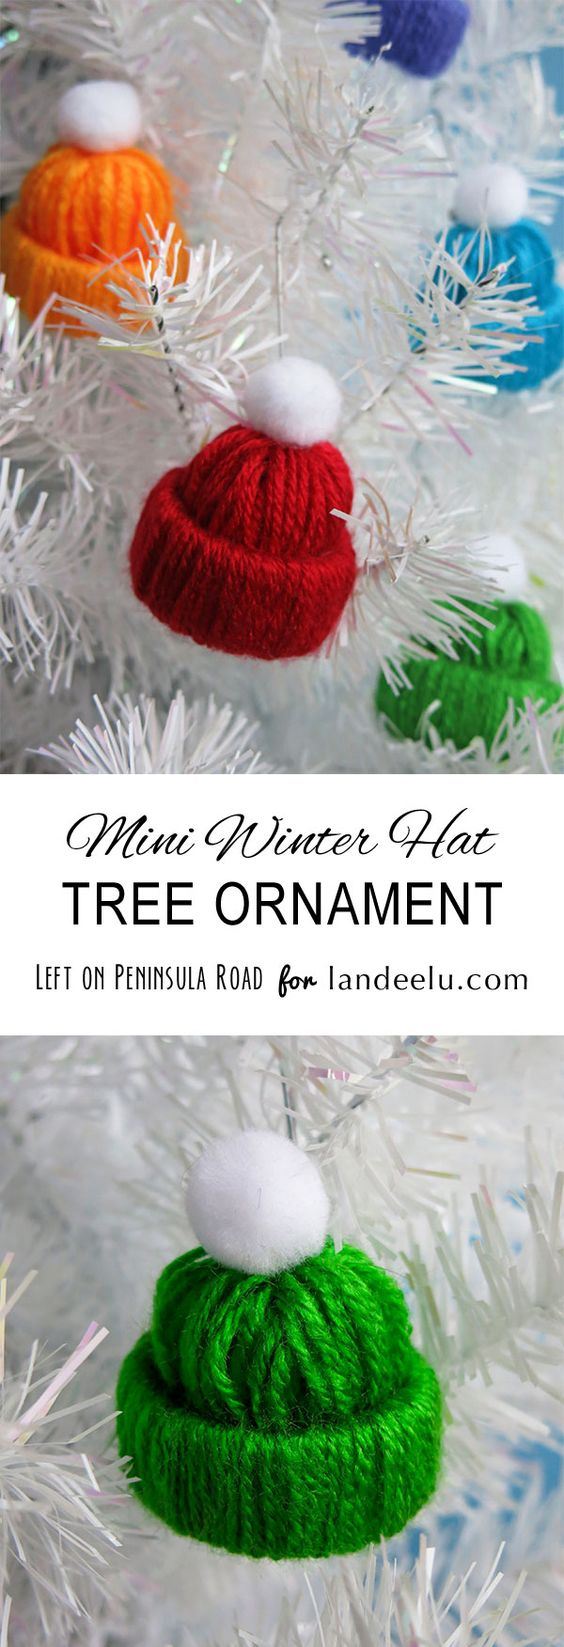 Make Mini Winter Hats to hang on your Christmas tree.: